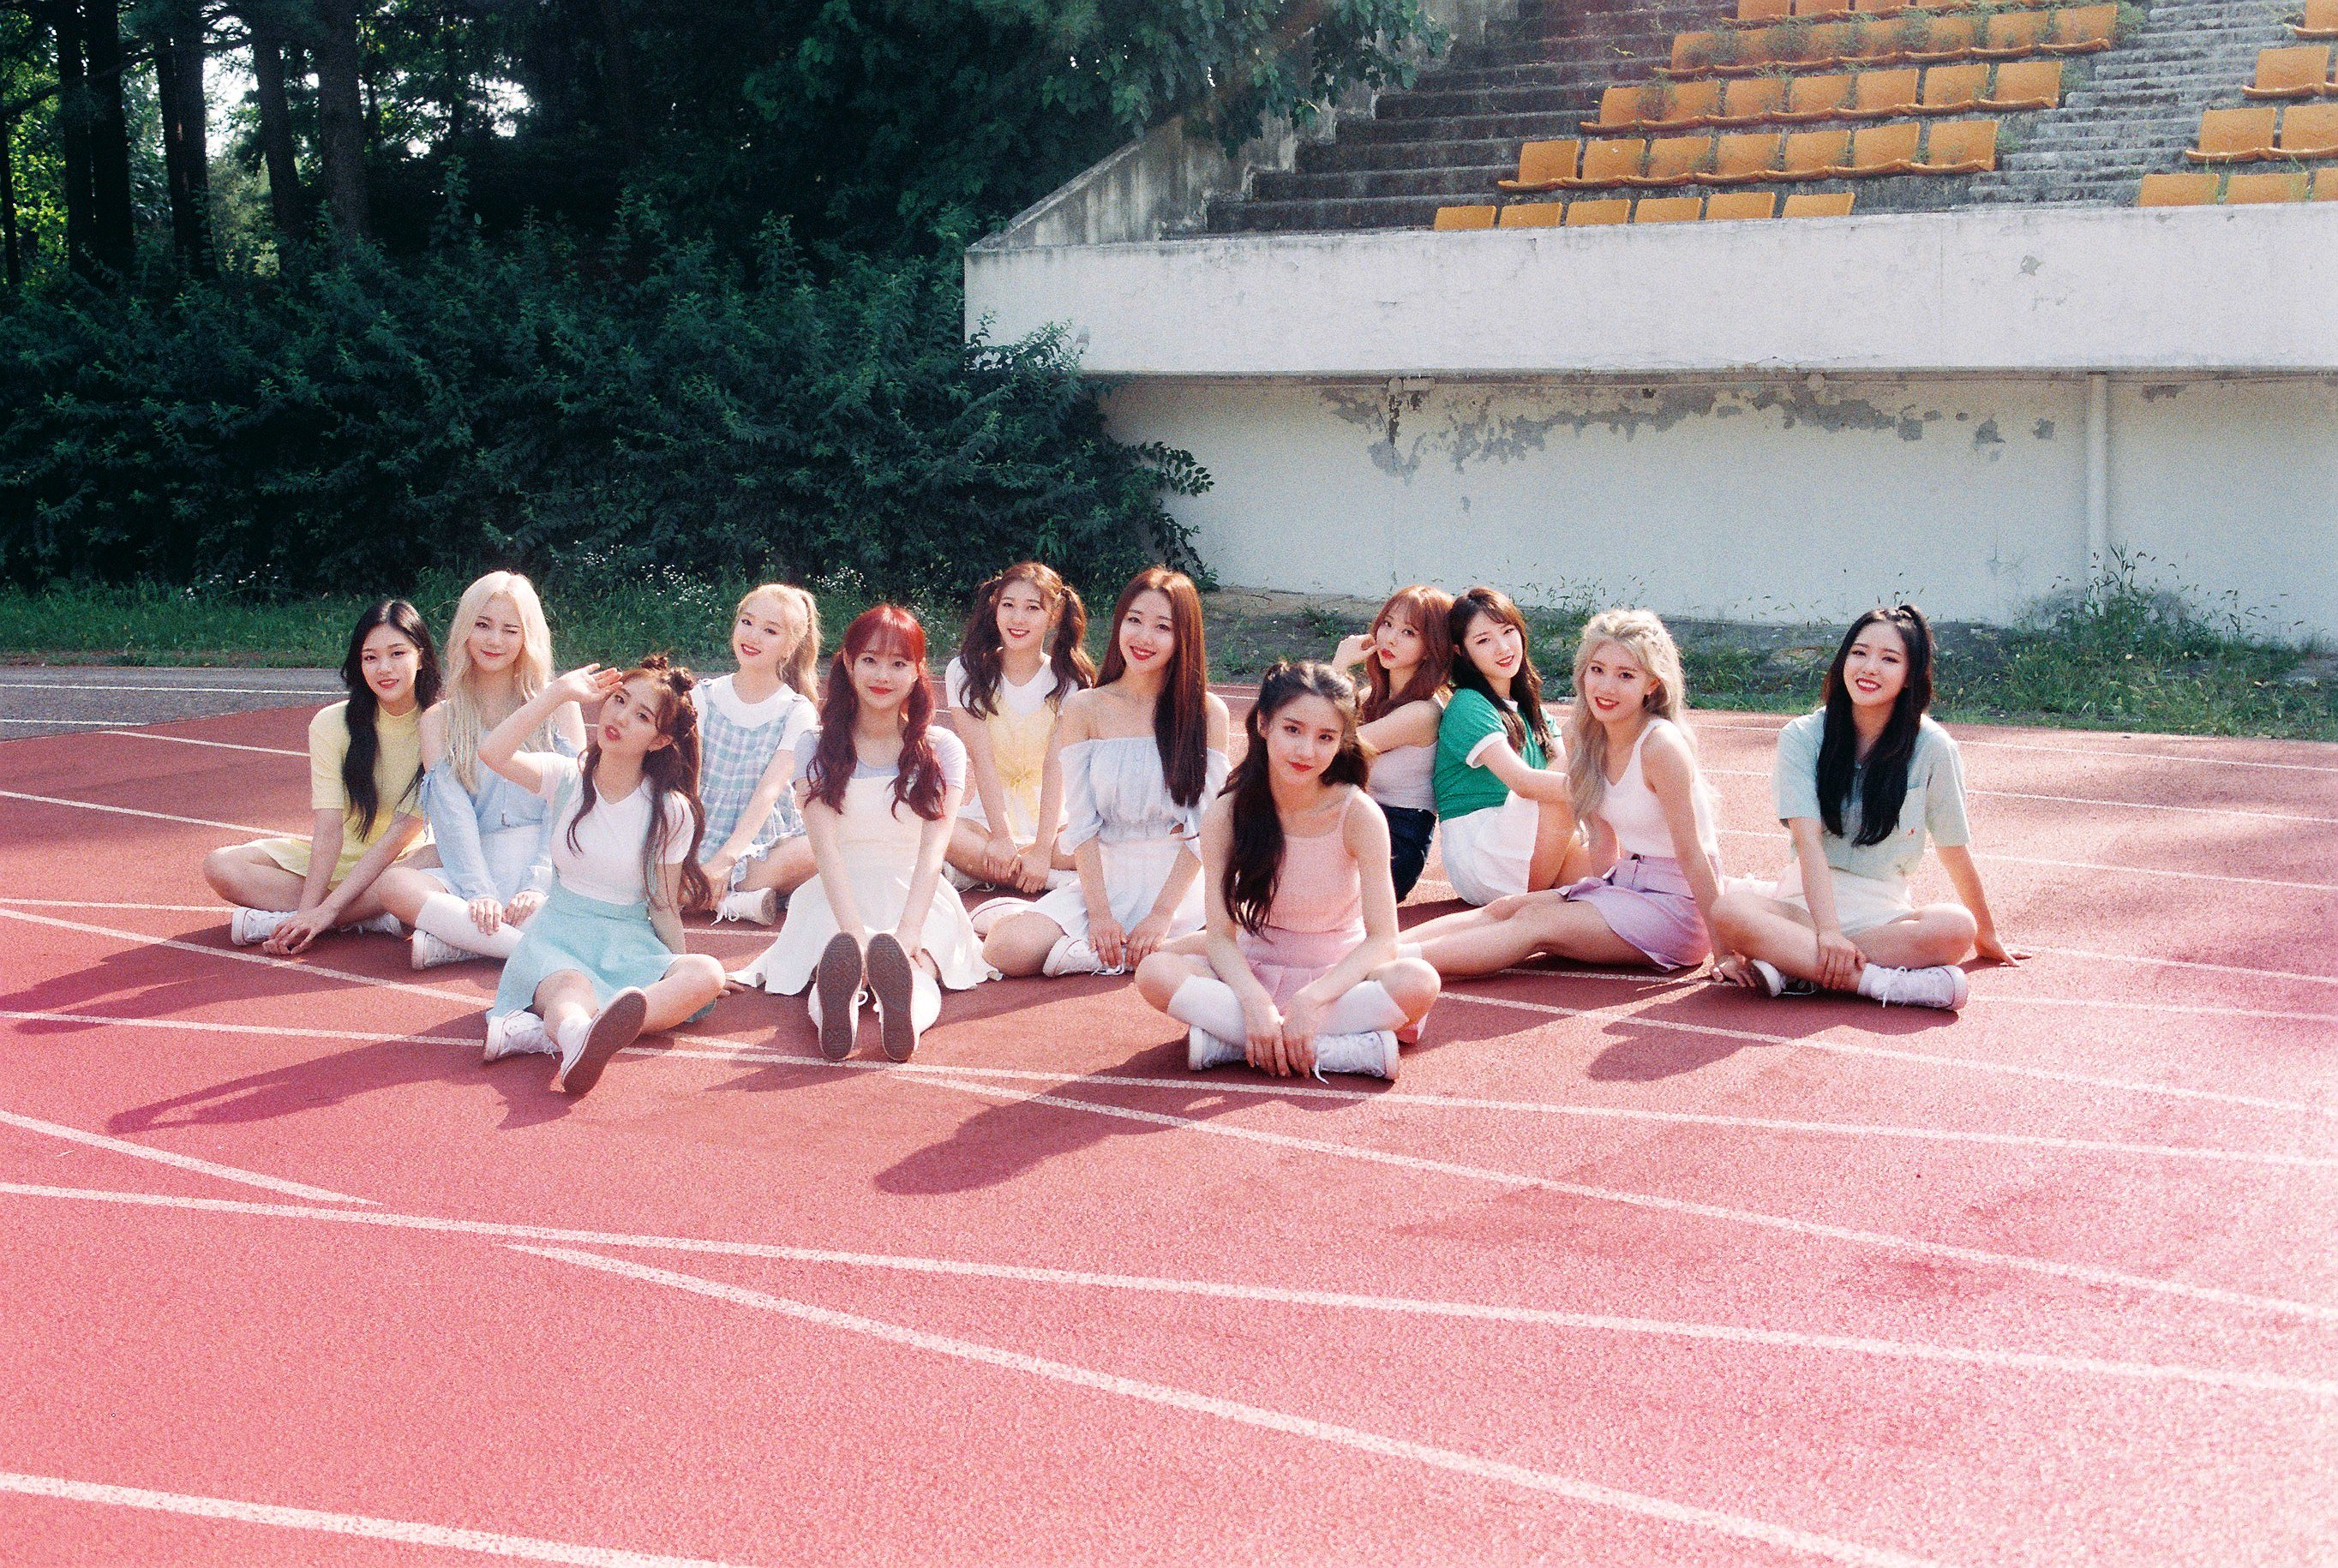 LOONA ++ group photo v1.png